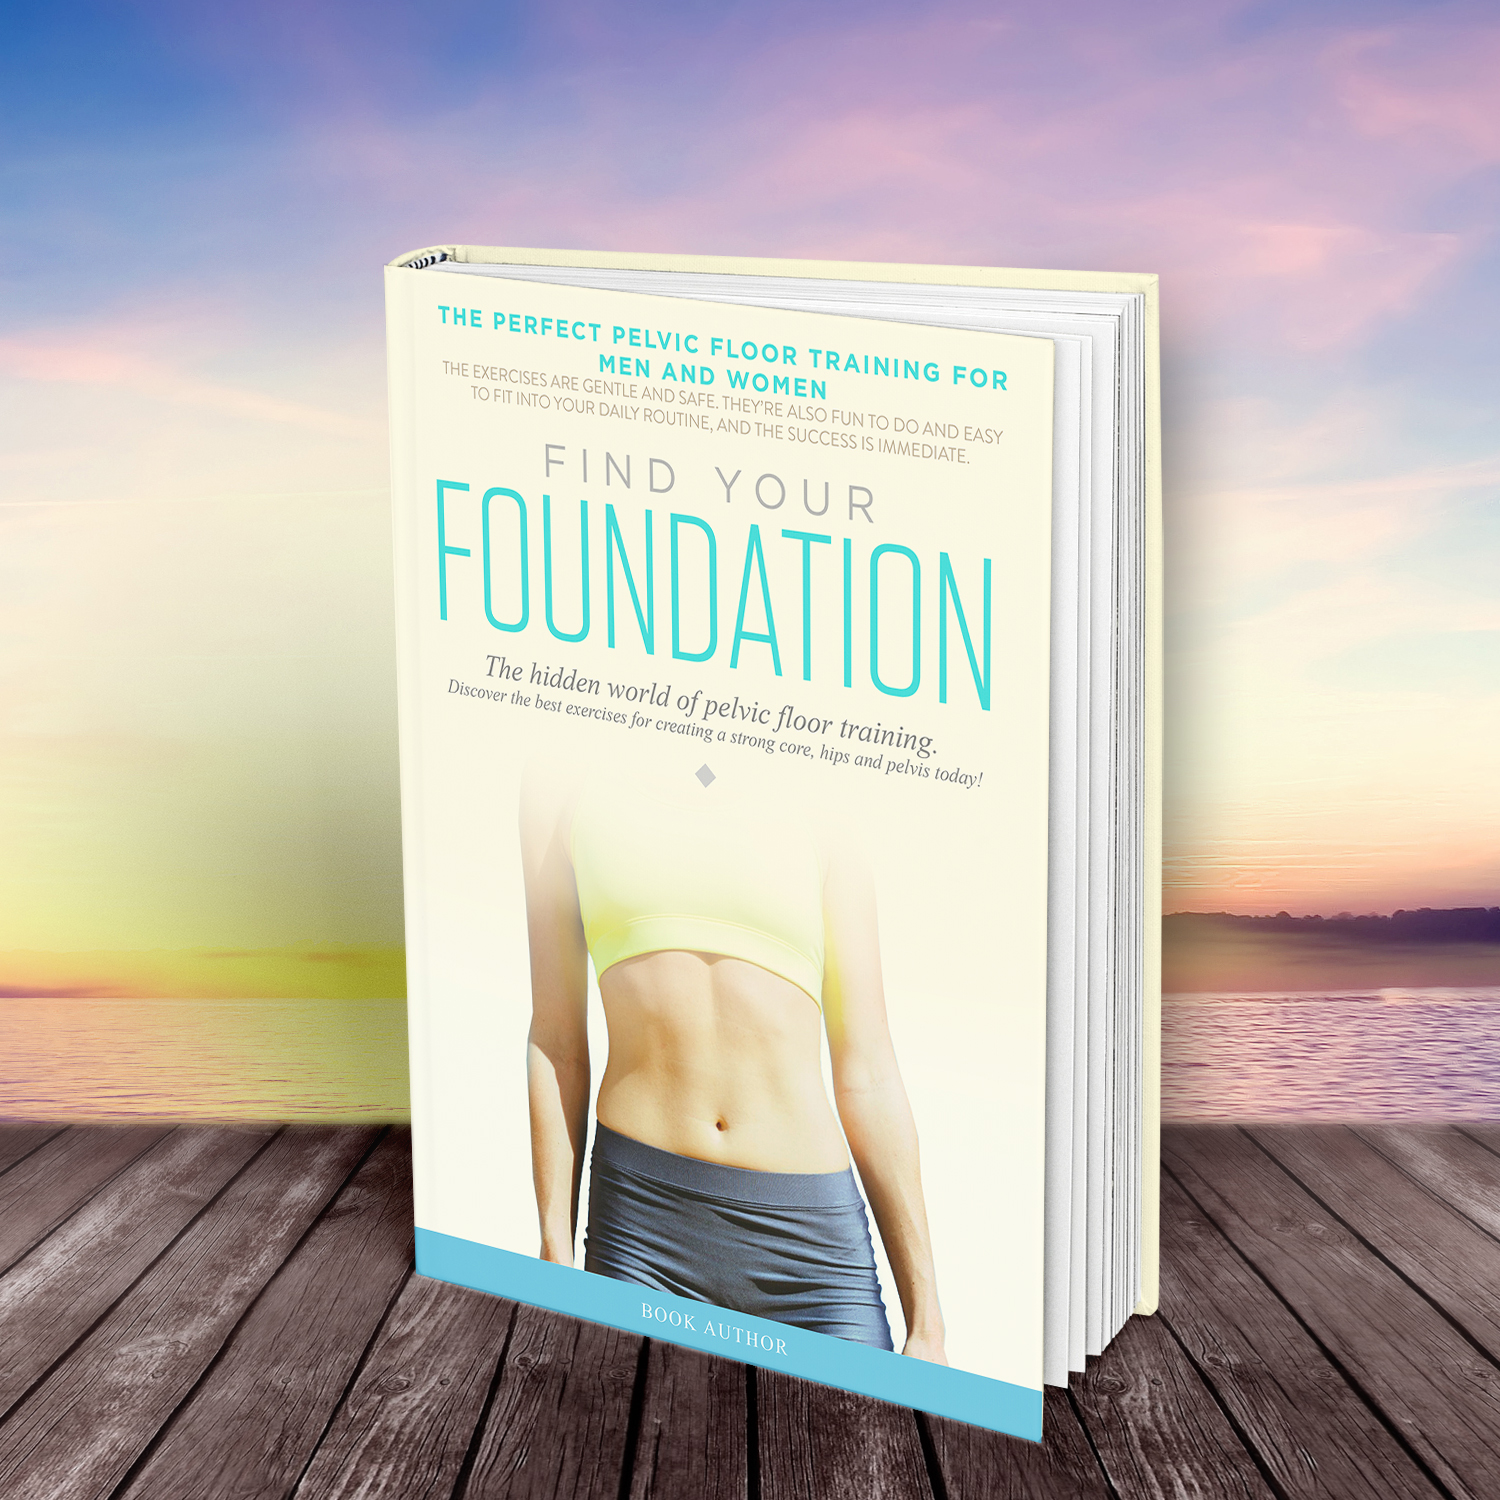 Health Book Cover Design : Serious traditional health and wellness book cover